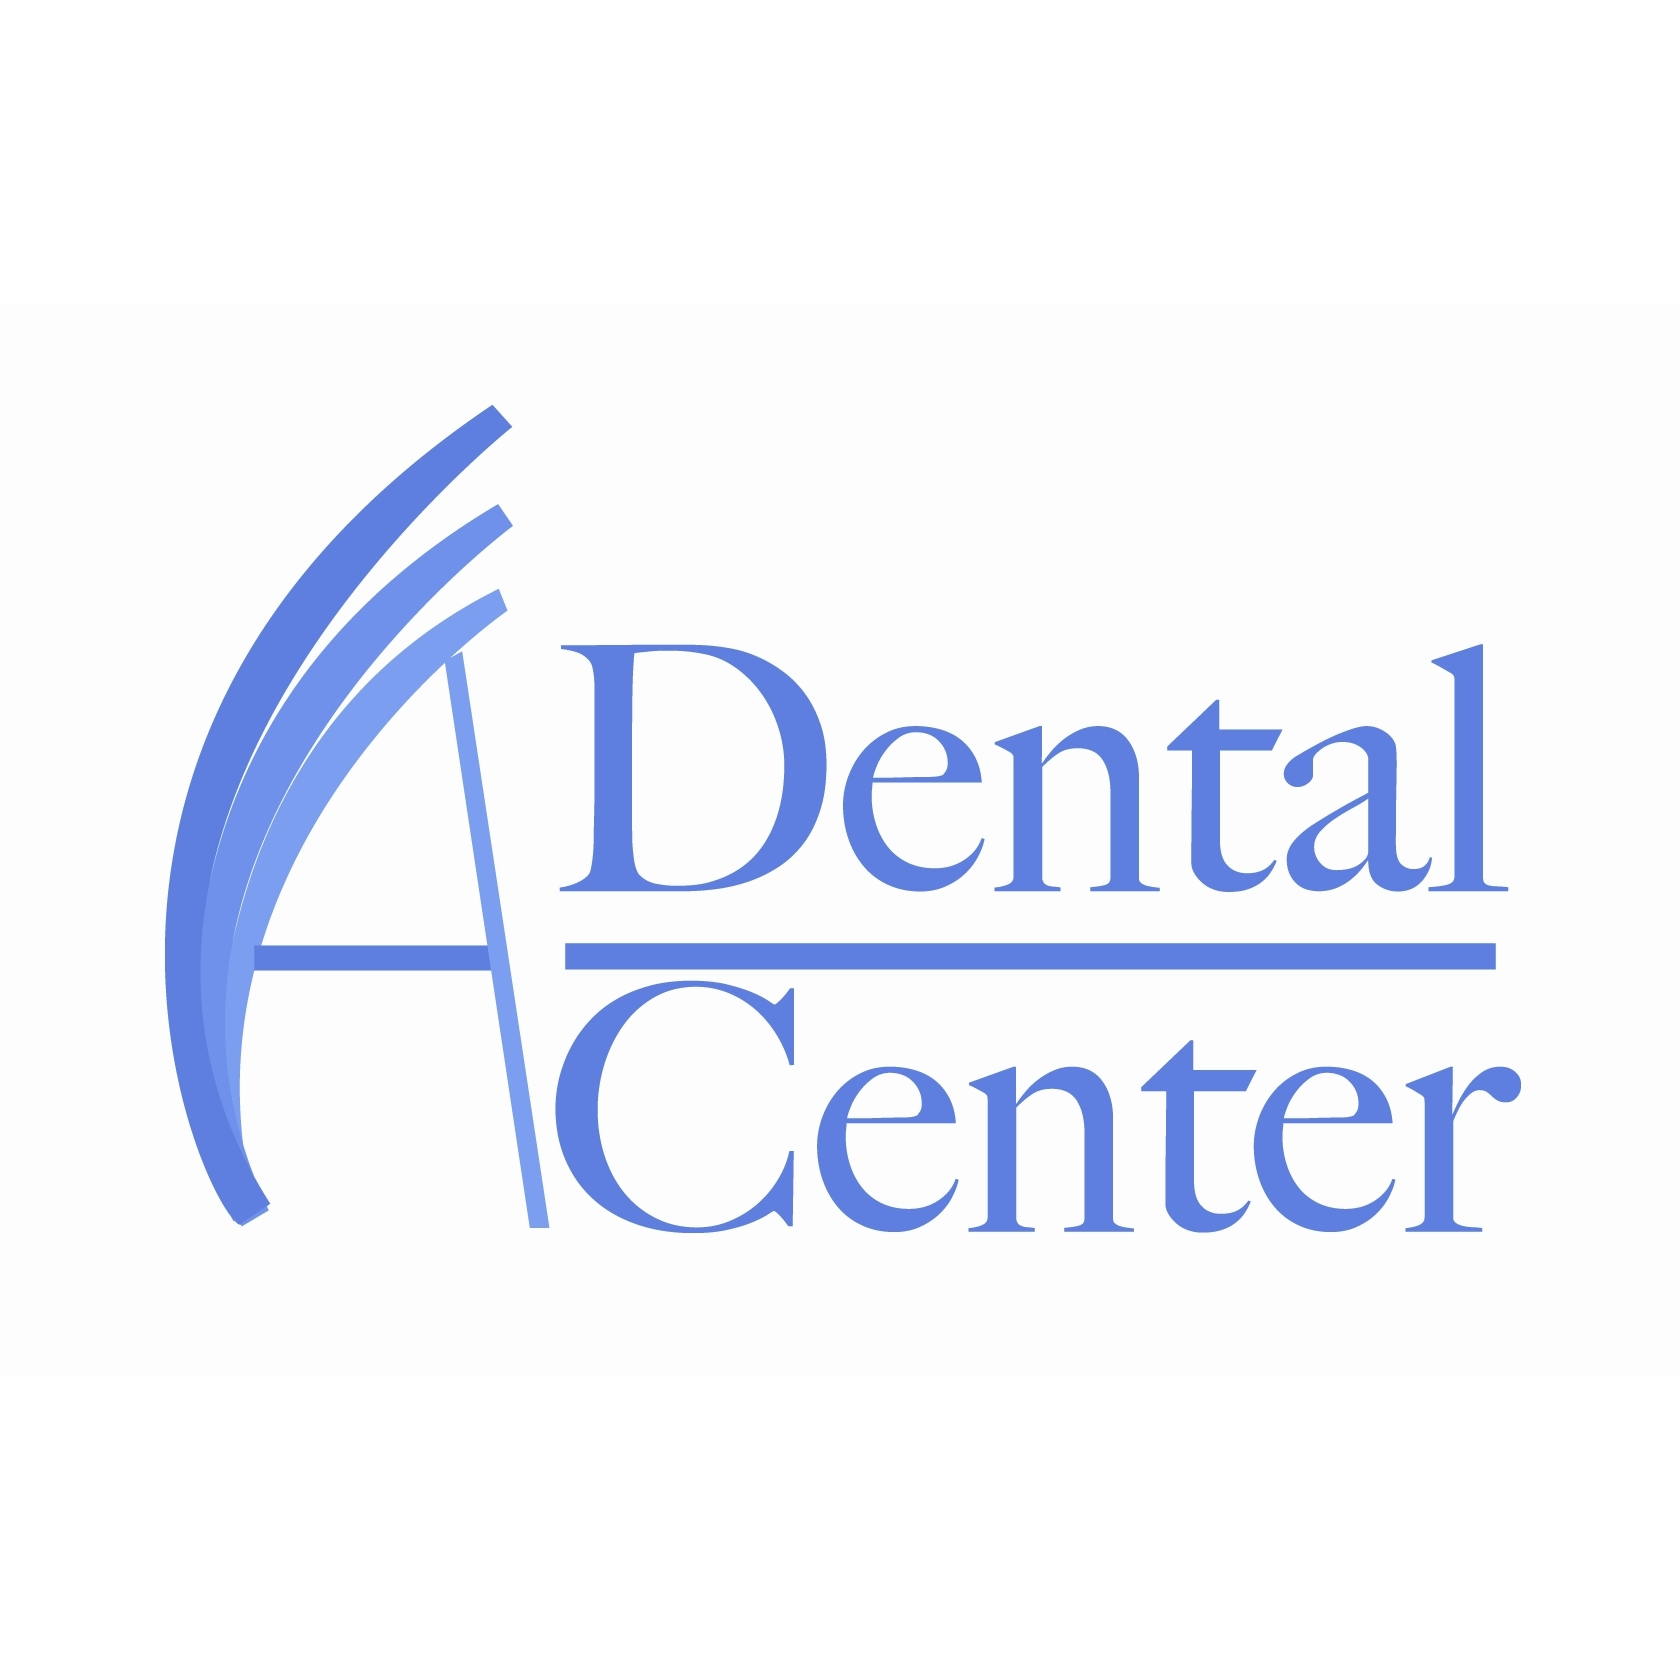 A-Dental Center - North Hollywood, CA - Dentists & Dental Services